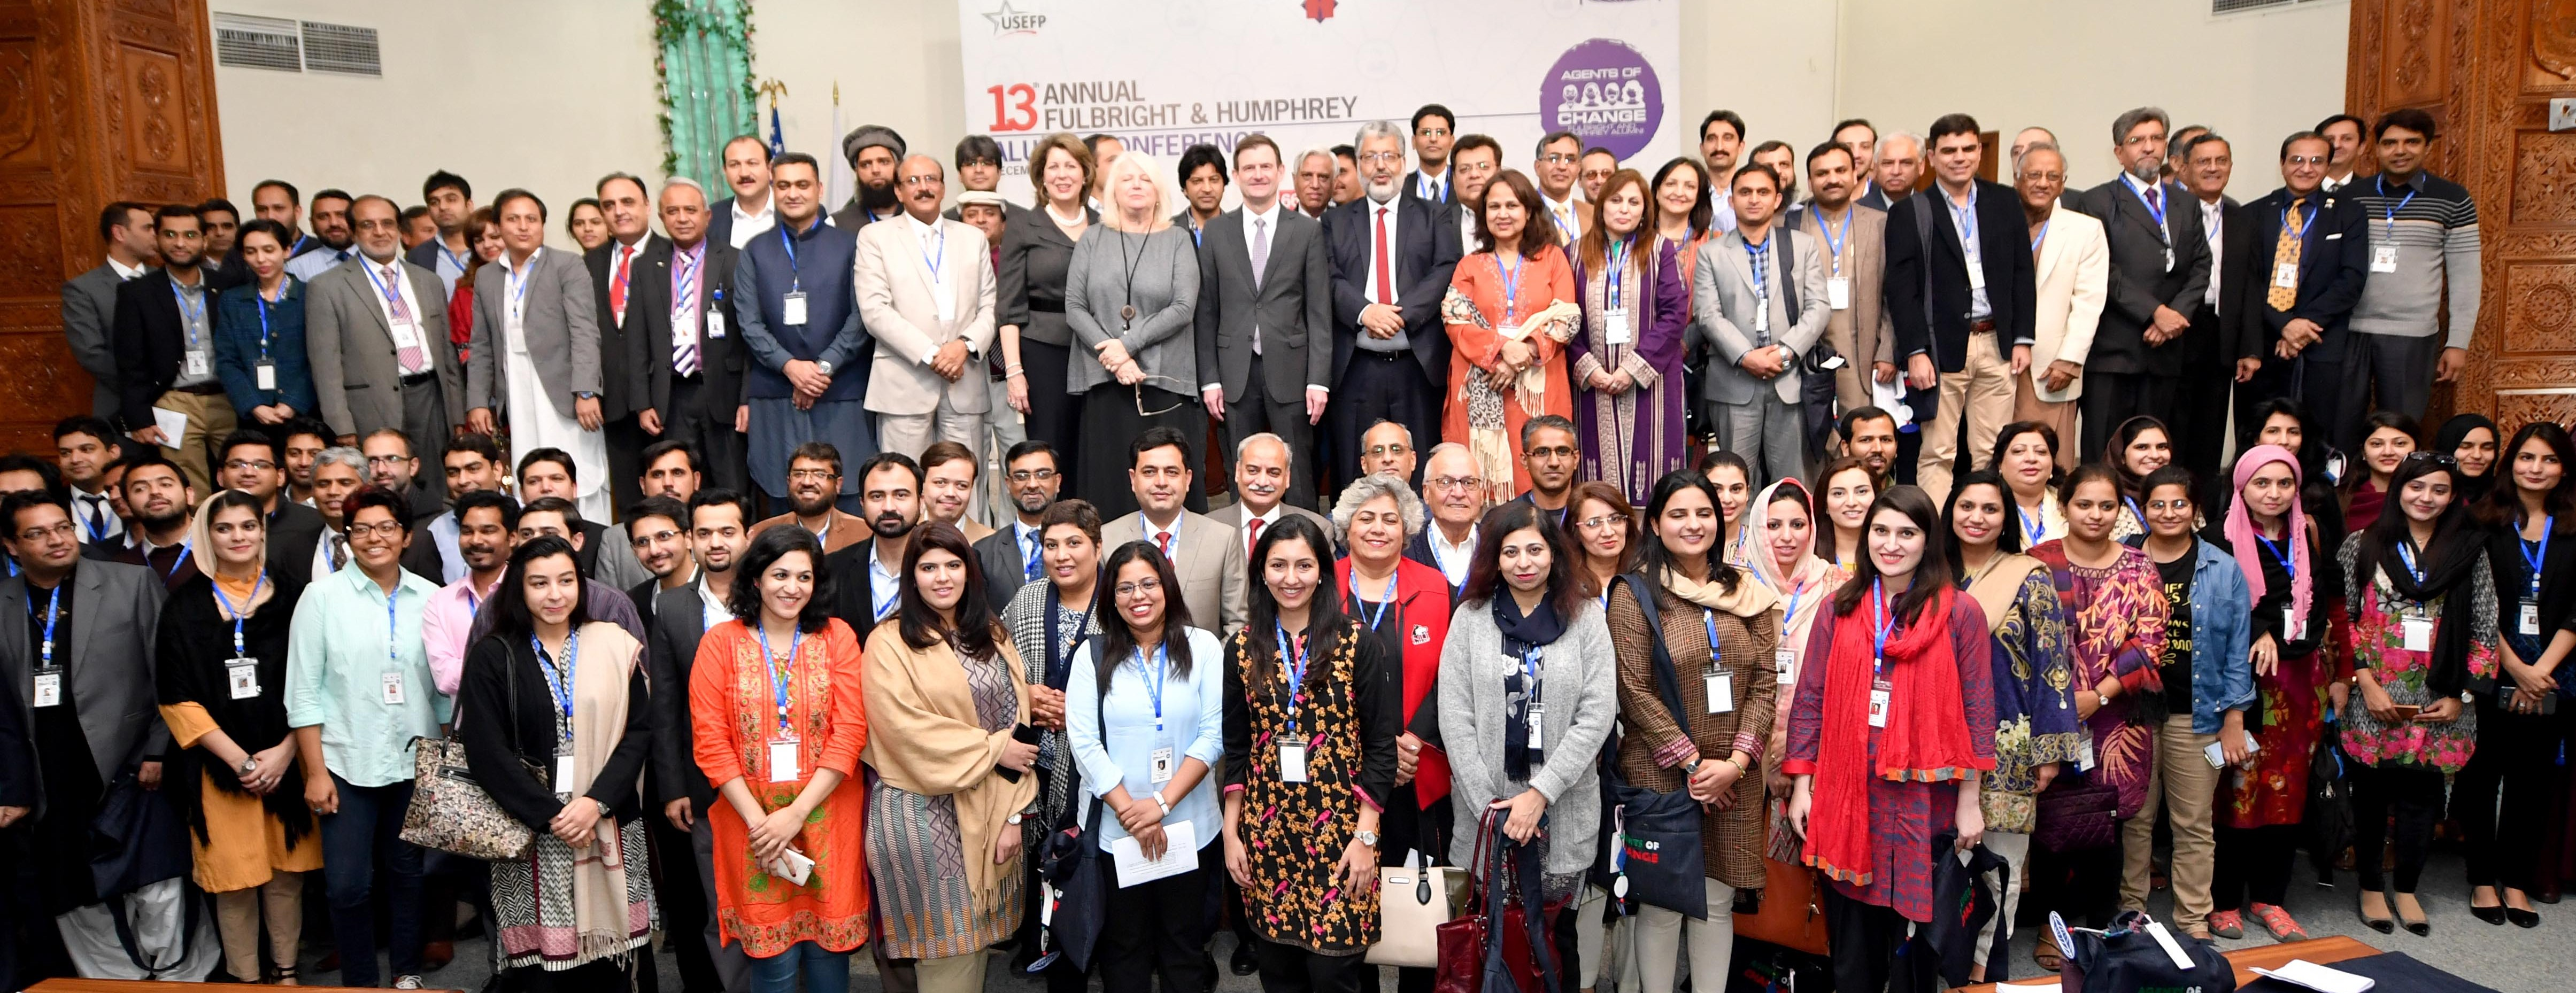 Medical college holds 29th medal distribution ceremony news pakistan - American Ambassador David Hale Meets With Pakistani Fulbright And Humphrey Alumni